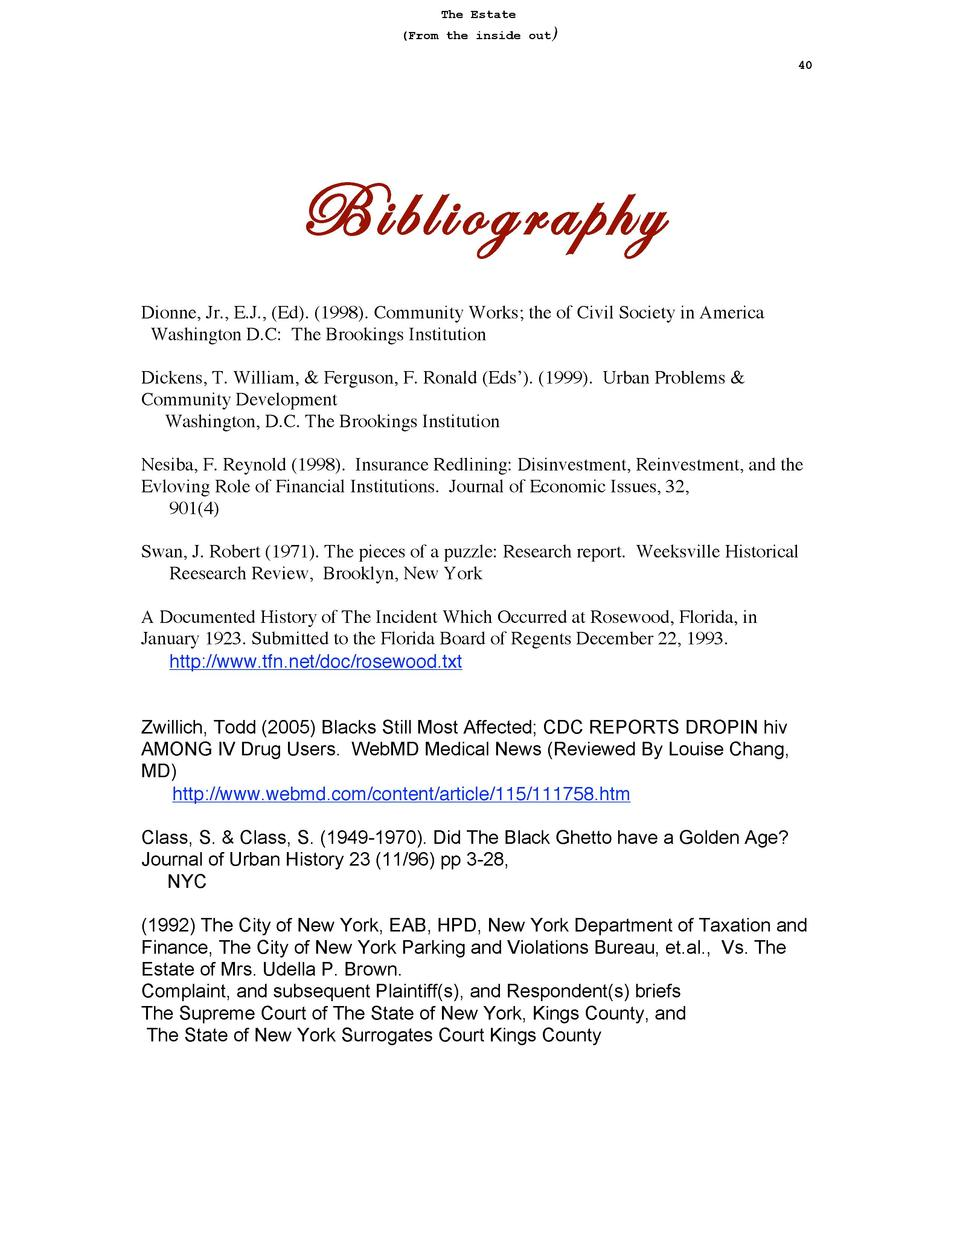 The Estate   From the inside out  40  Bibliography Dionne, Jr., E.J.,  Ed .  1998 . Community Works  the of Civil Society ...